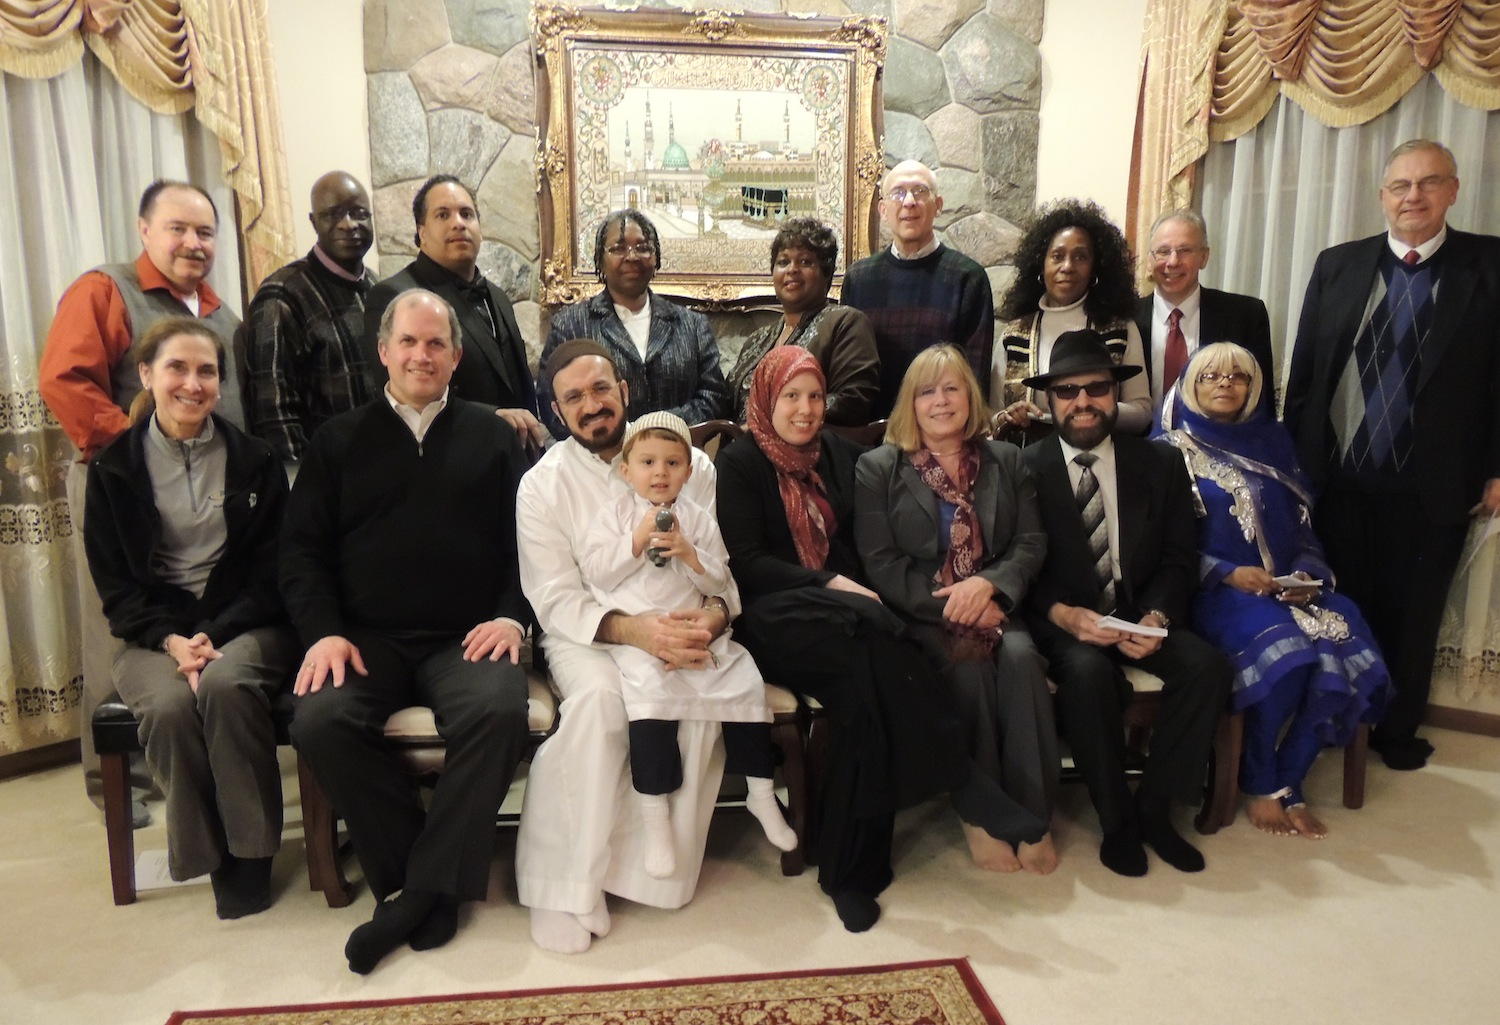 01/15/14: Interfaith Members Met with Imam Elahi to discuss